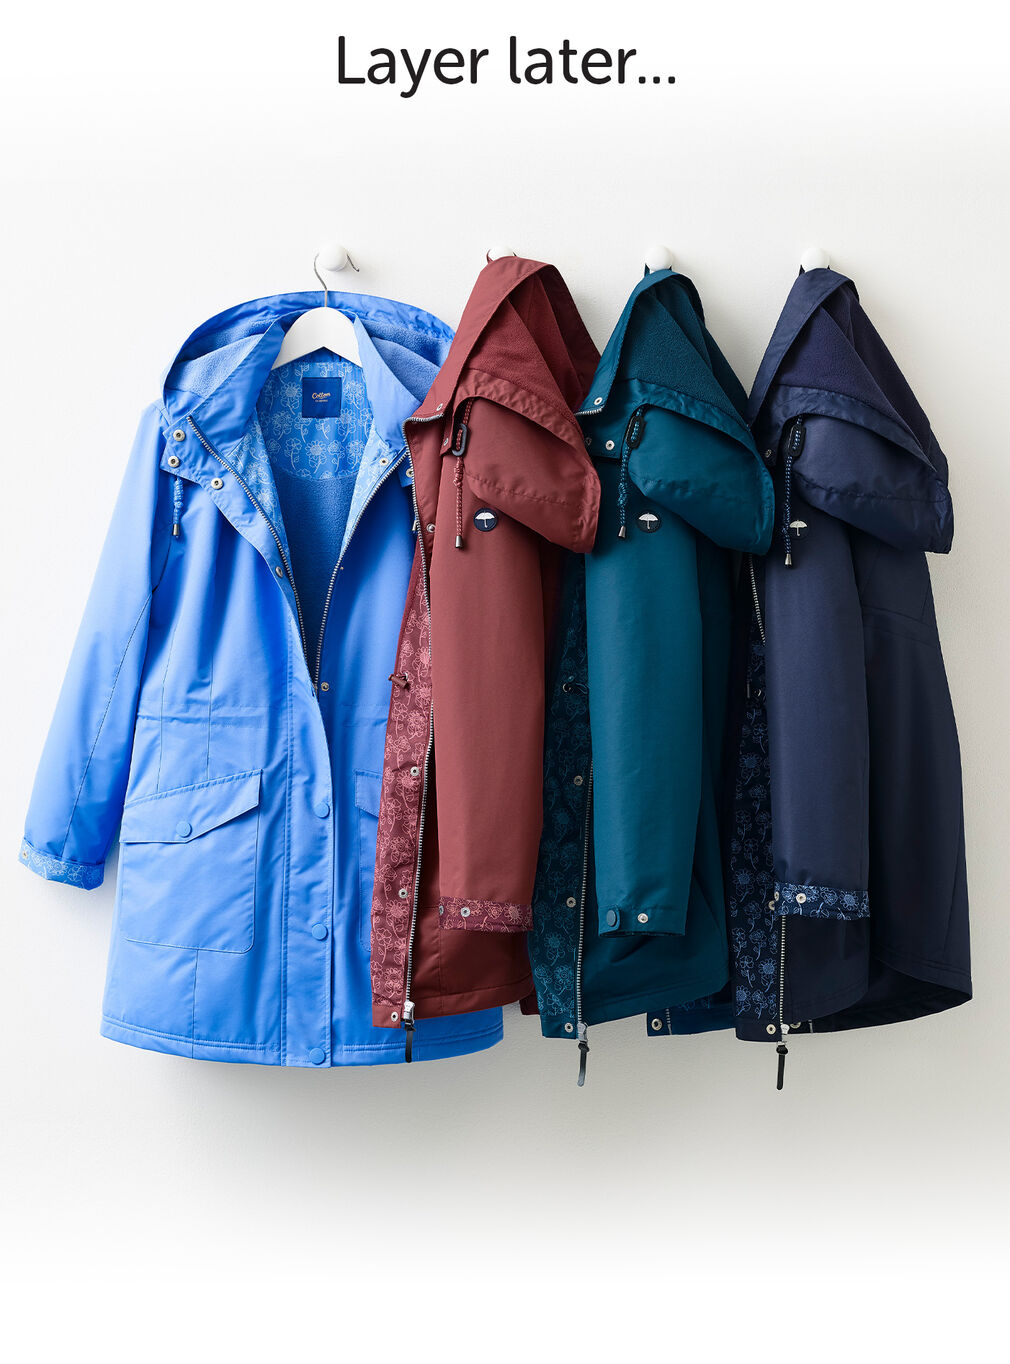 Wear Today Layer Tomorrow Inspirations | Waterproof Fleece Lined Jacket | By Cotton Traders